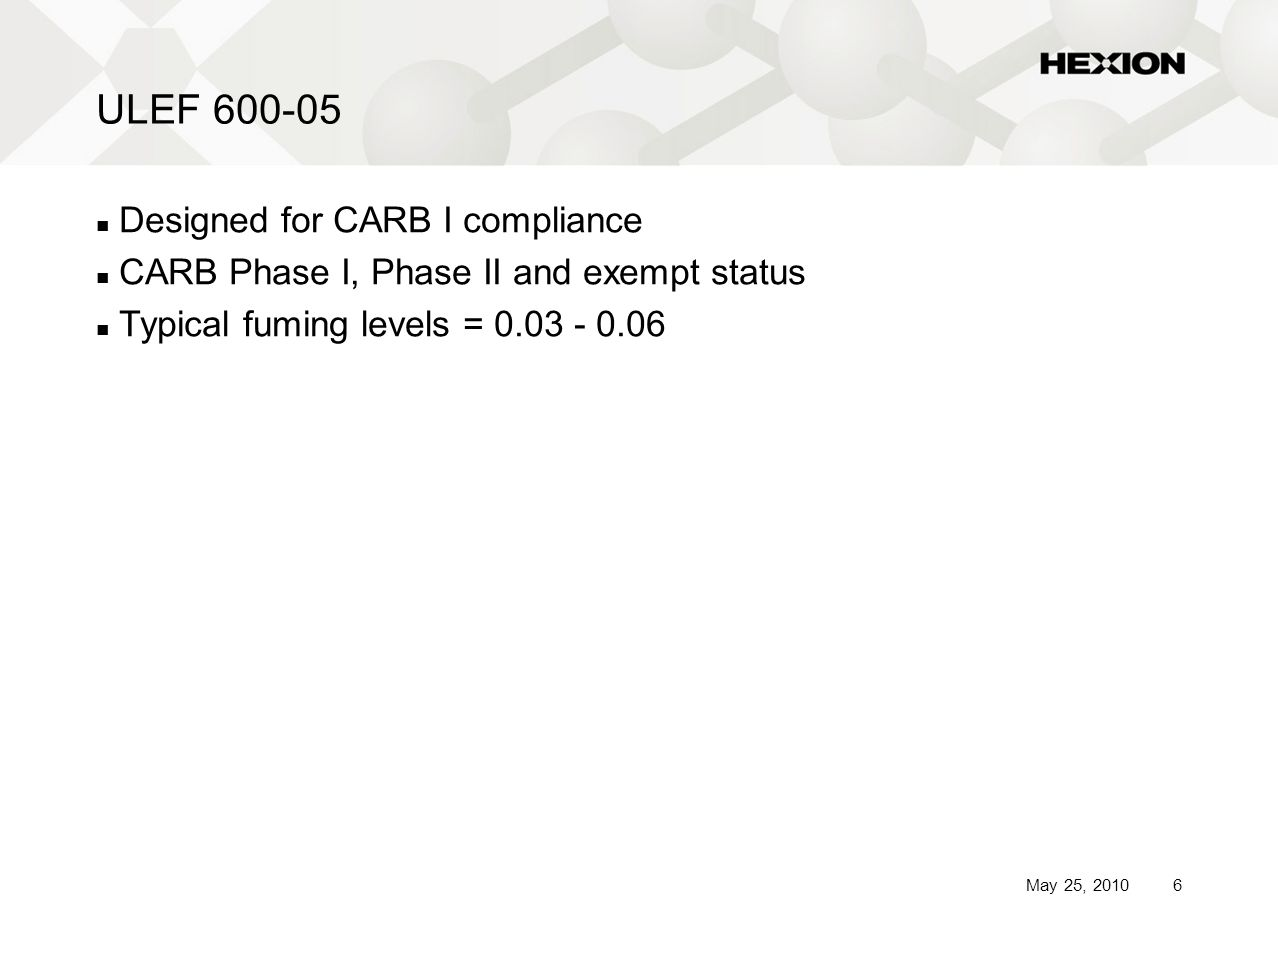 6May 25, 2010 ULEF 600-05 Designed for CARB I compliance CARB Phase I, Phase II and exempt status Typical fuming levels = 0.03 - 0.06